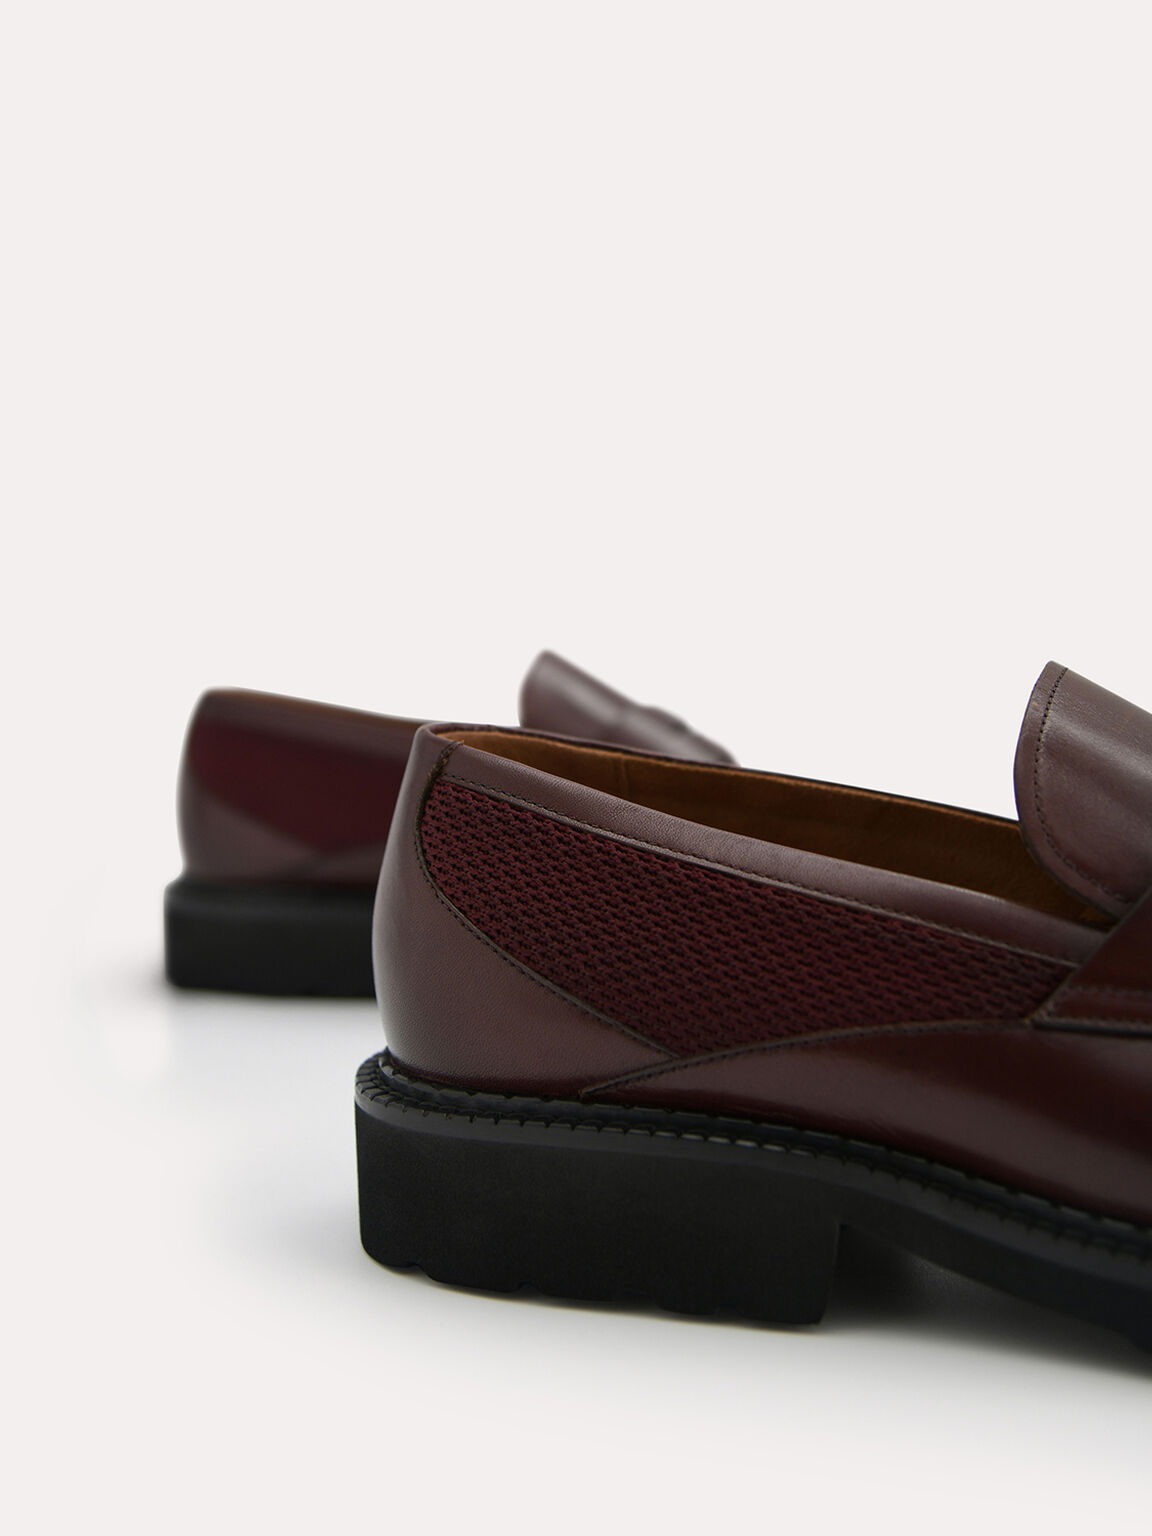 Burnished Leather Penny Loafer, Maroon, hi-res